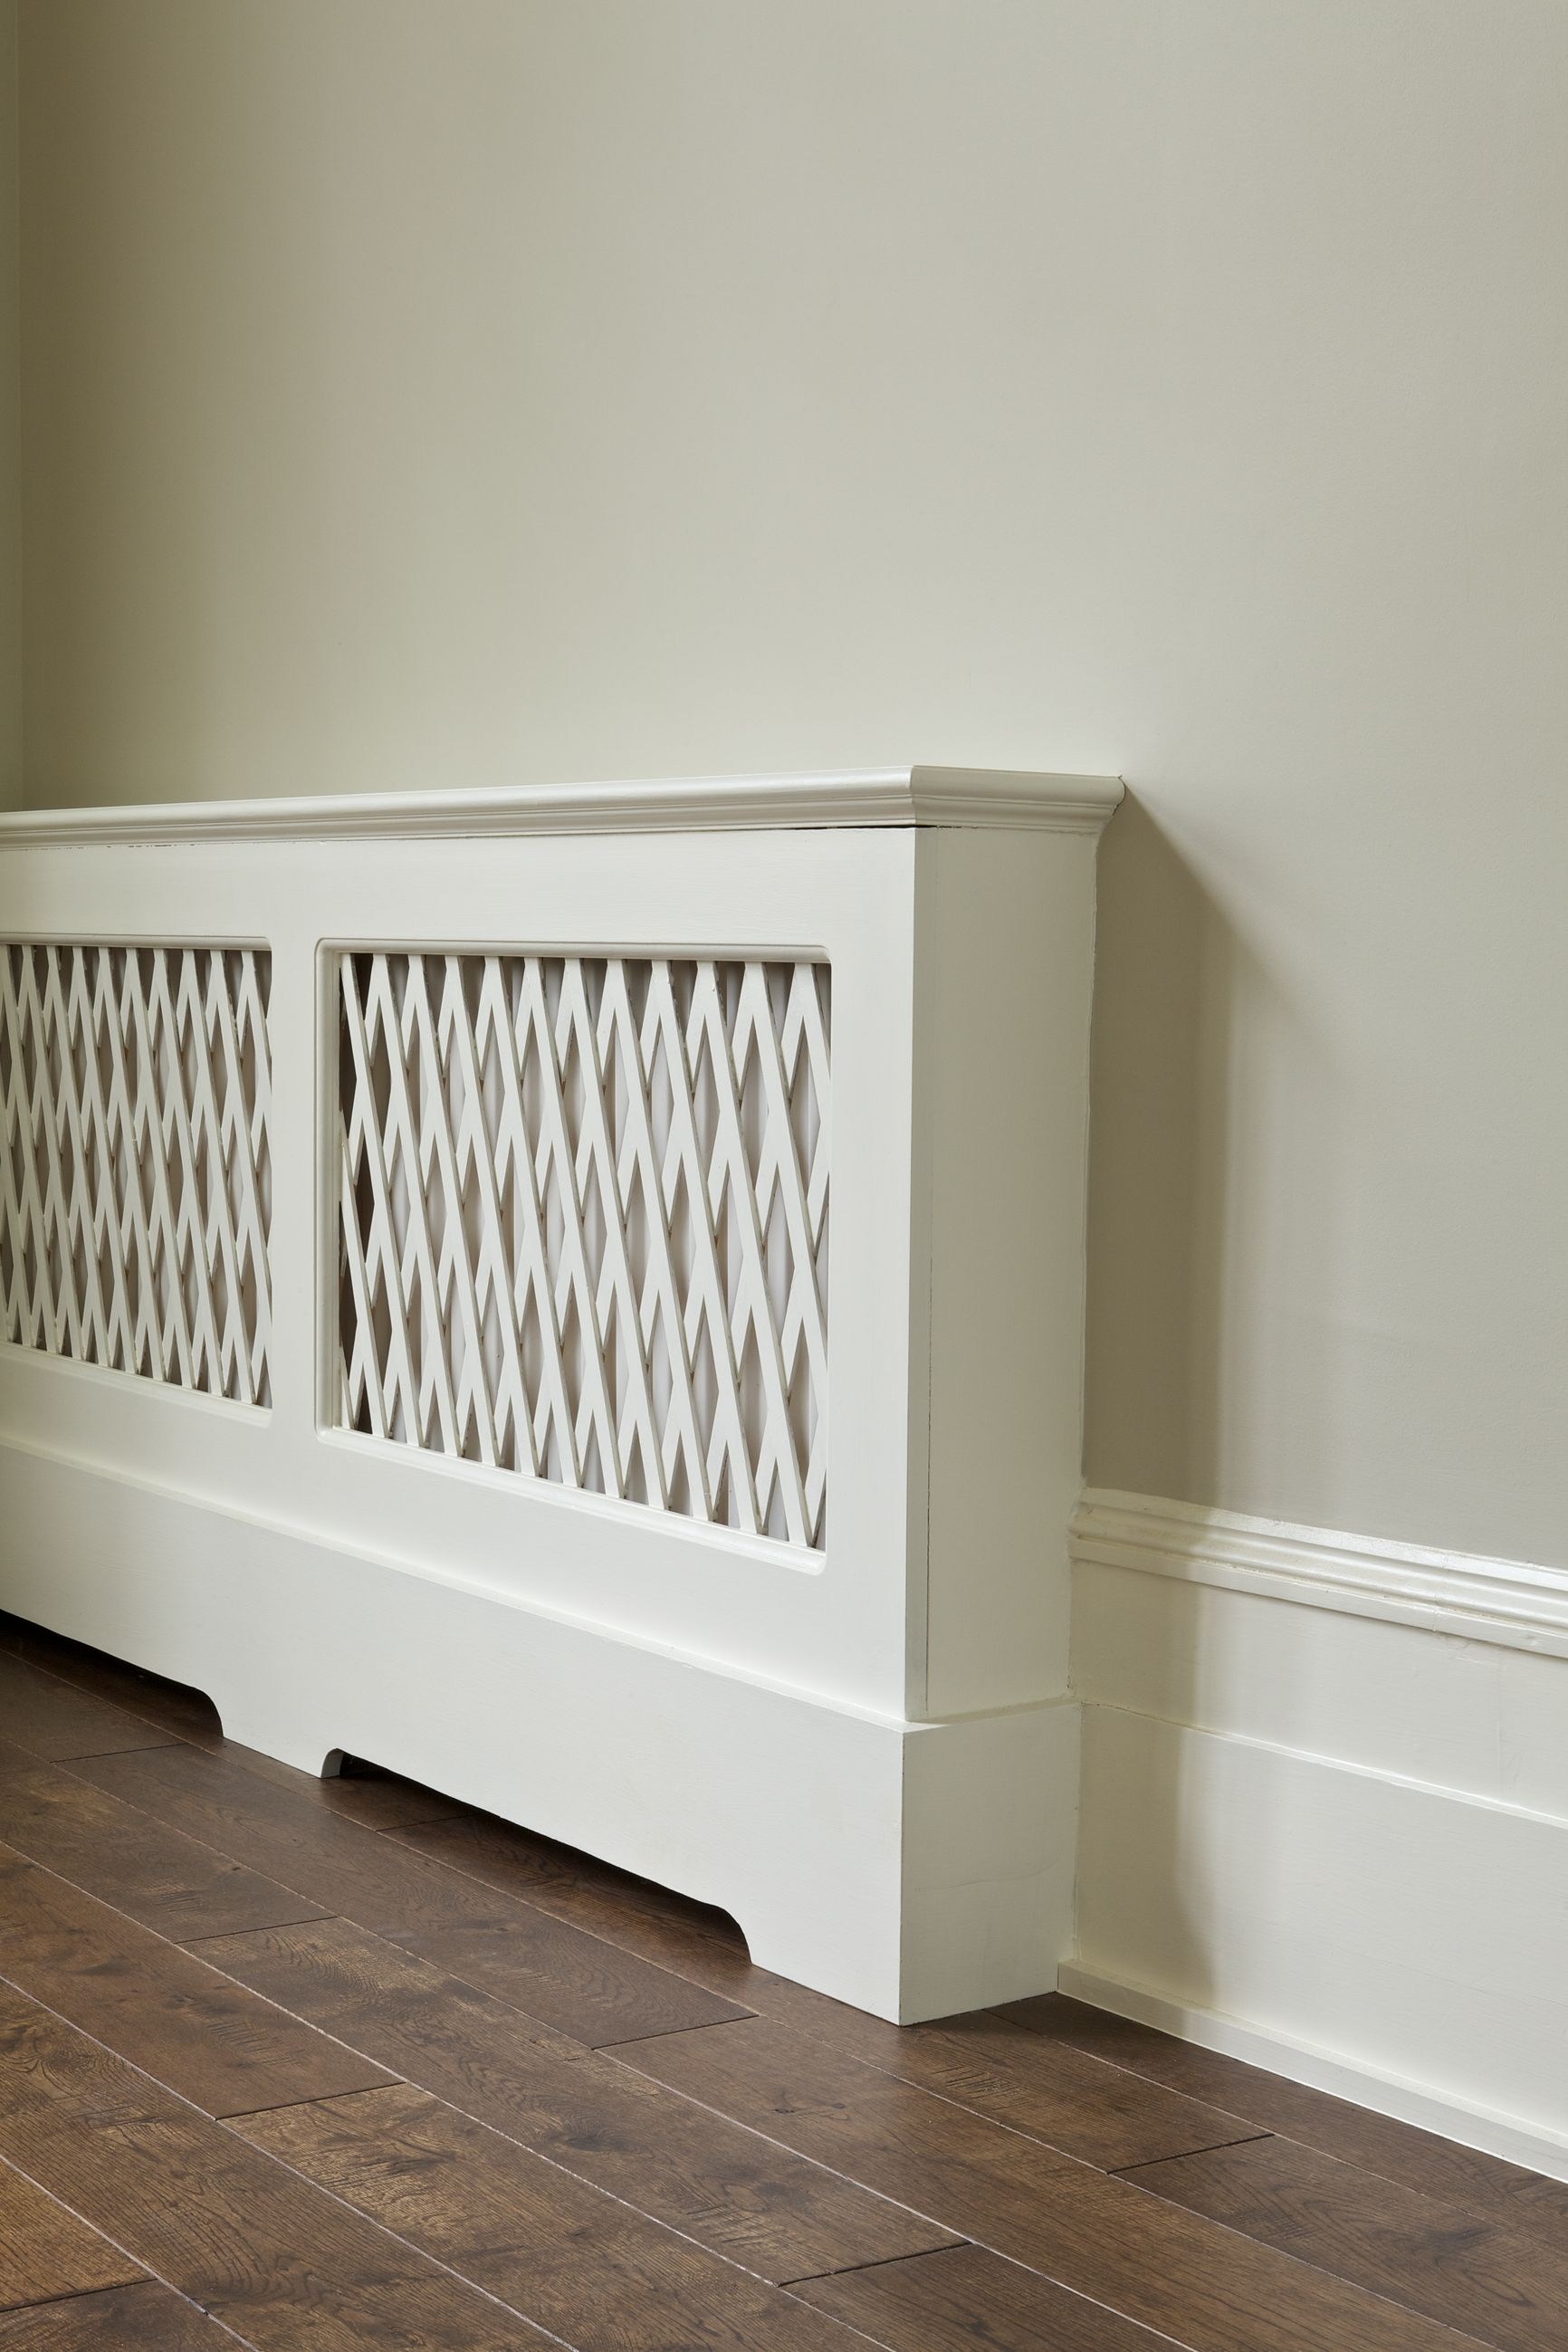 Radiator Cover In Farrow & Balls Wimborne Whitelove, Love This